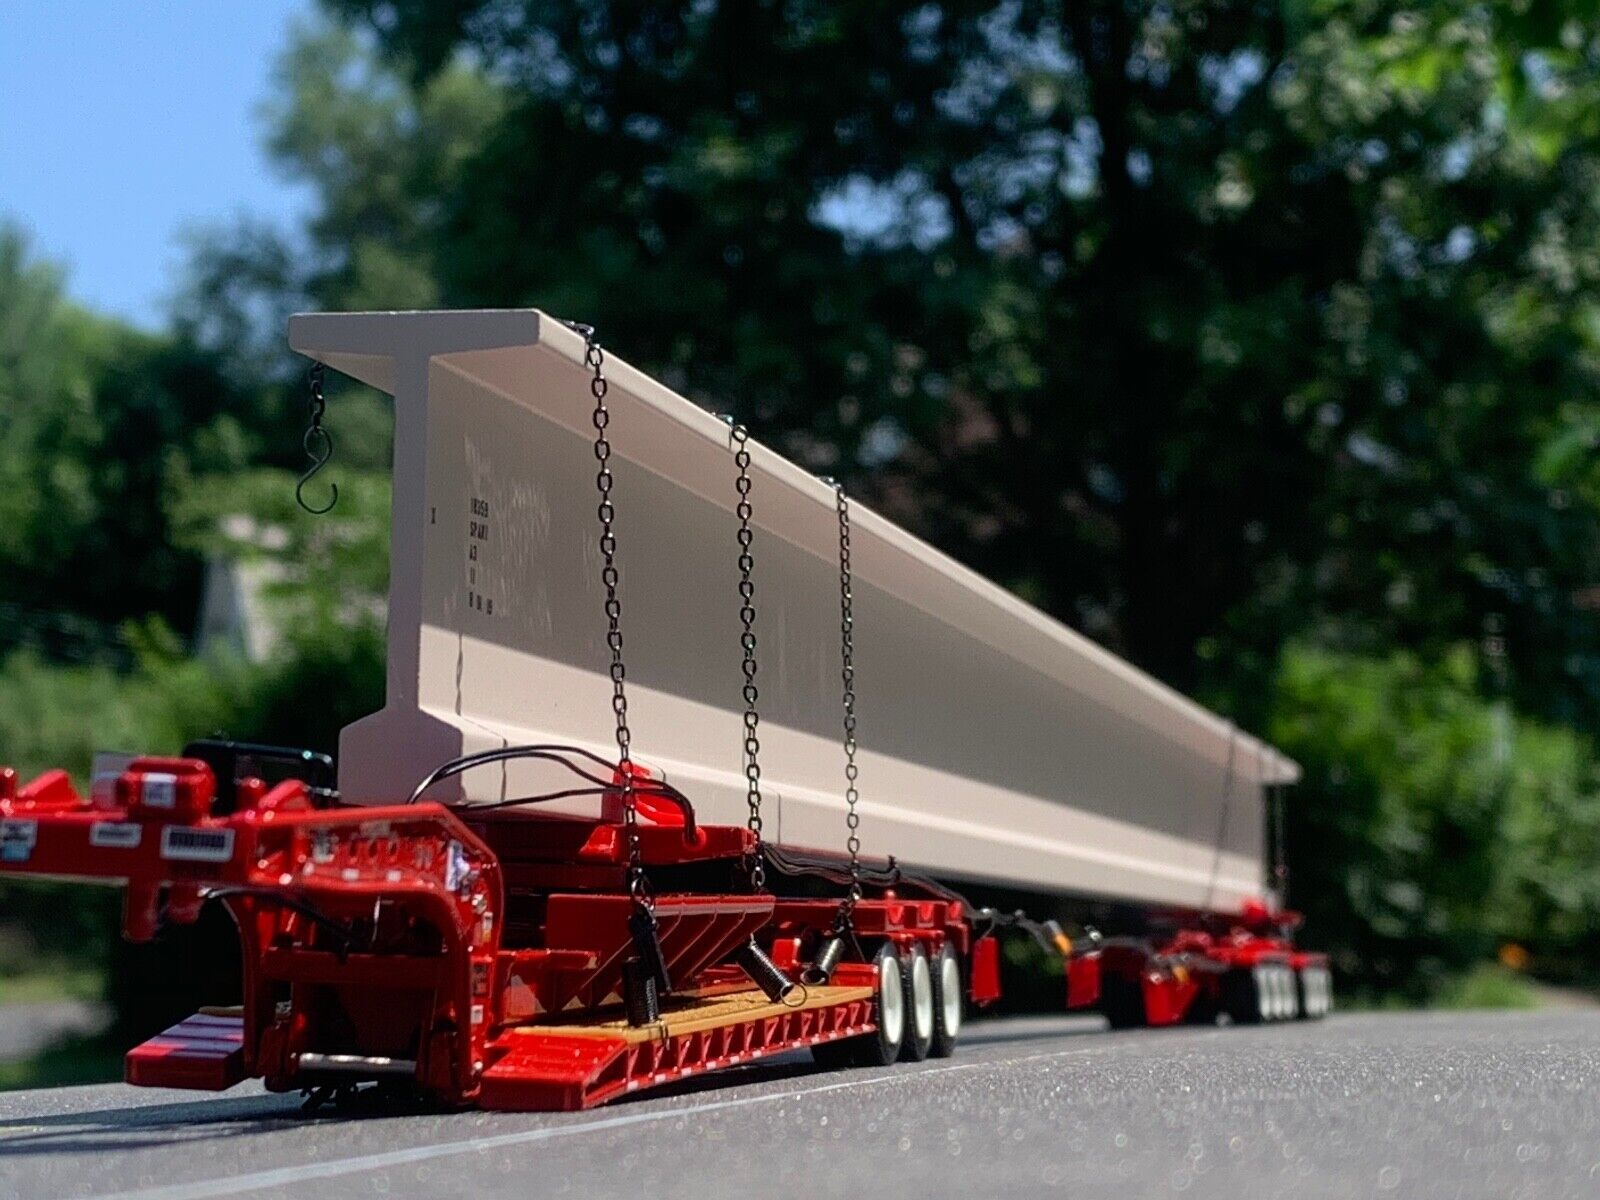 1/64 DCP RED FONTAINE LOWBOY, BUNK & ELK RIVER AXLE HYDRA STEER TRAILER & BEAM